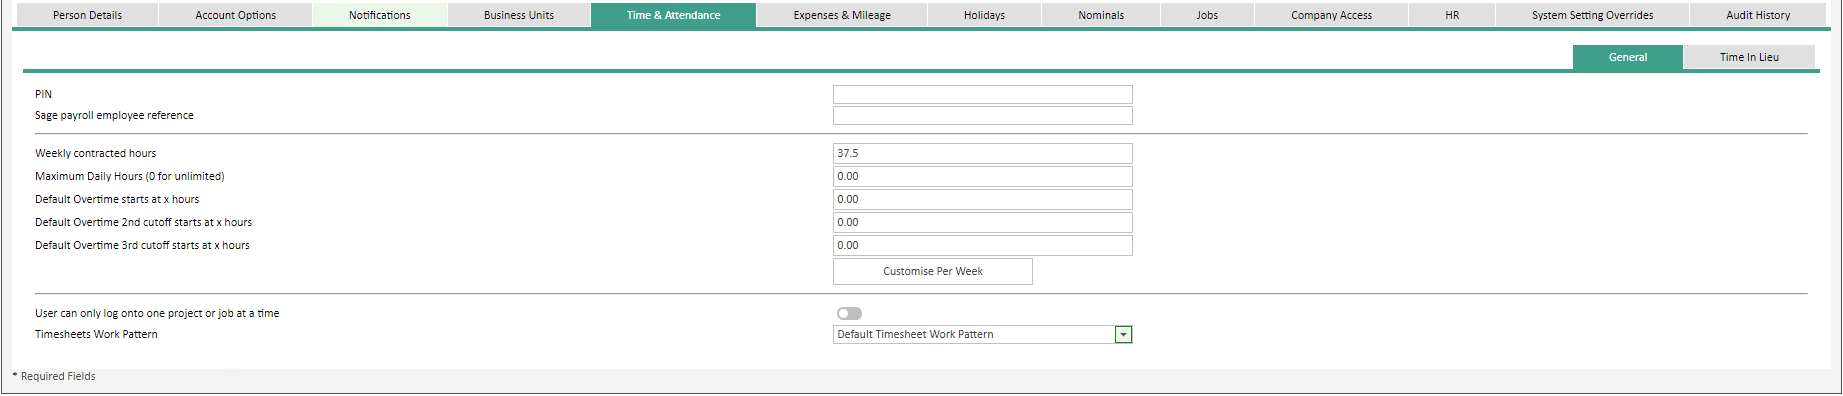 Sicon WAP User Settings Help and User Guide - Users HUG Image Section 26.6 Image 1